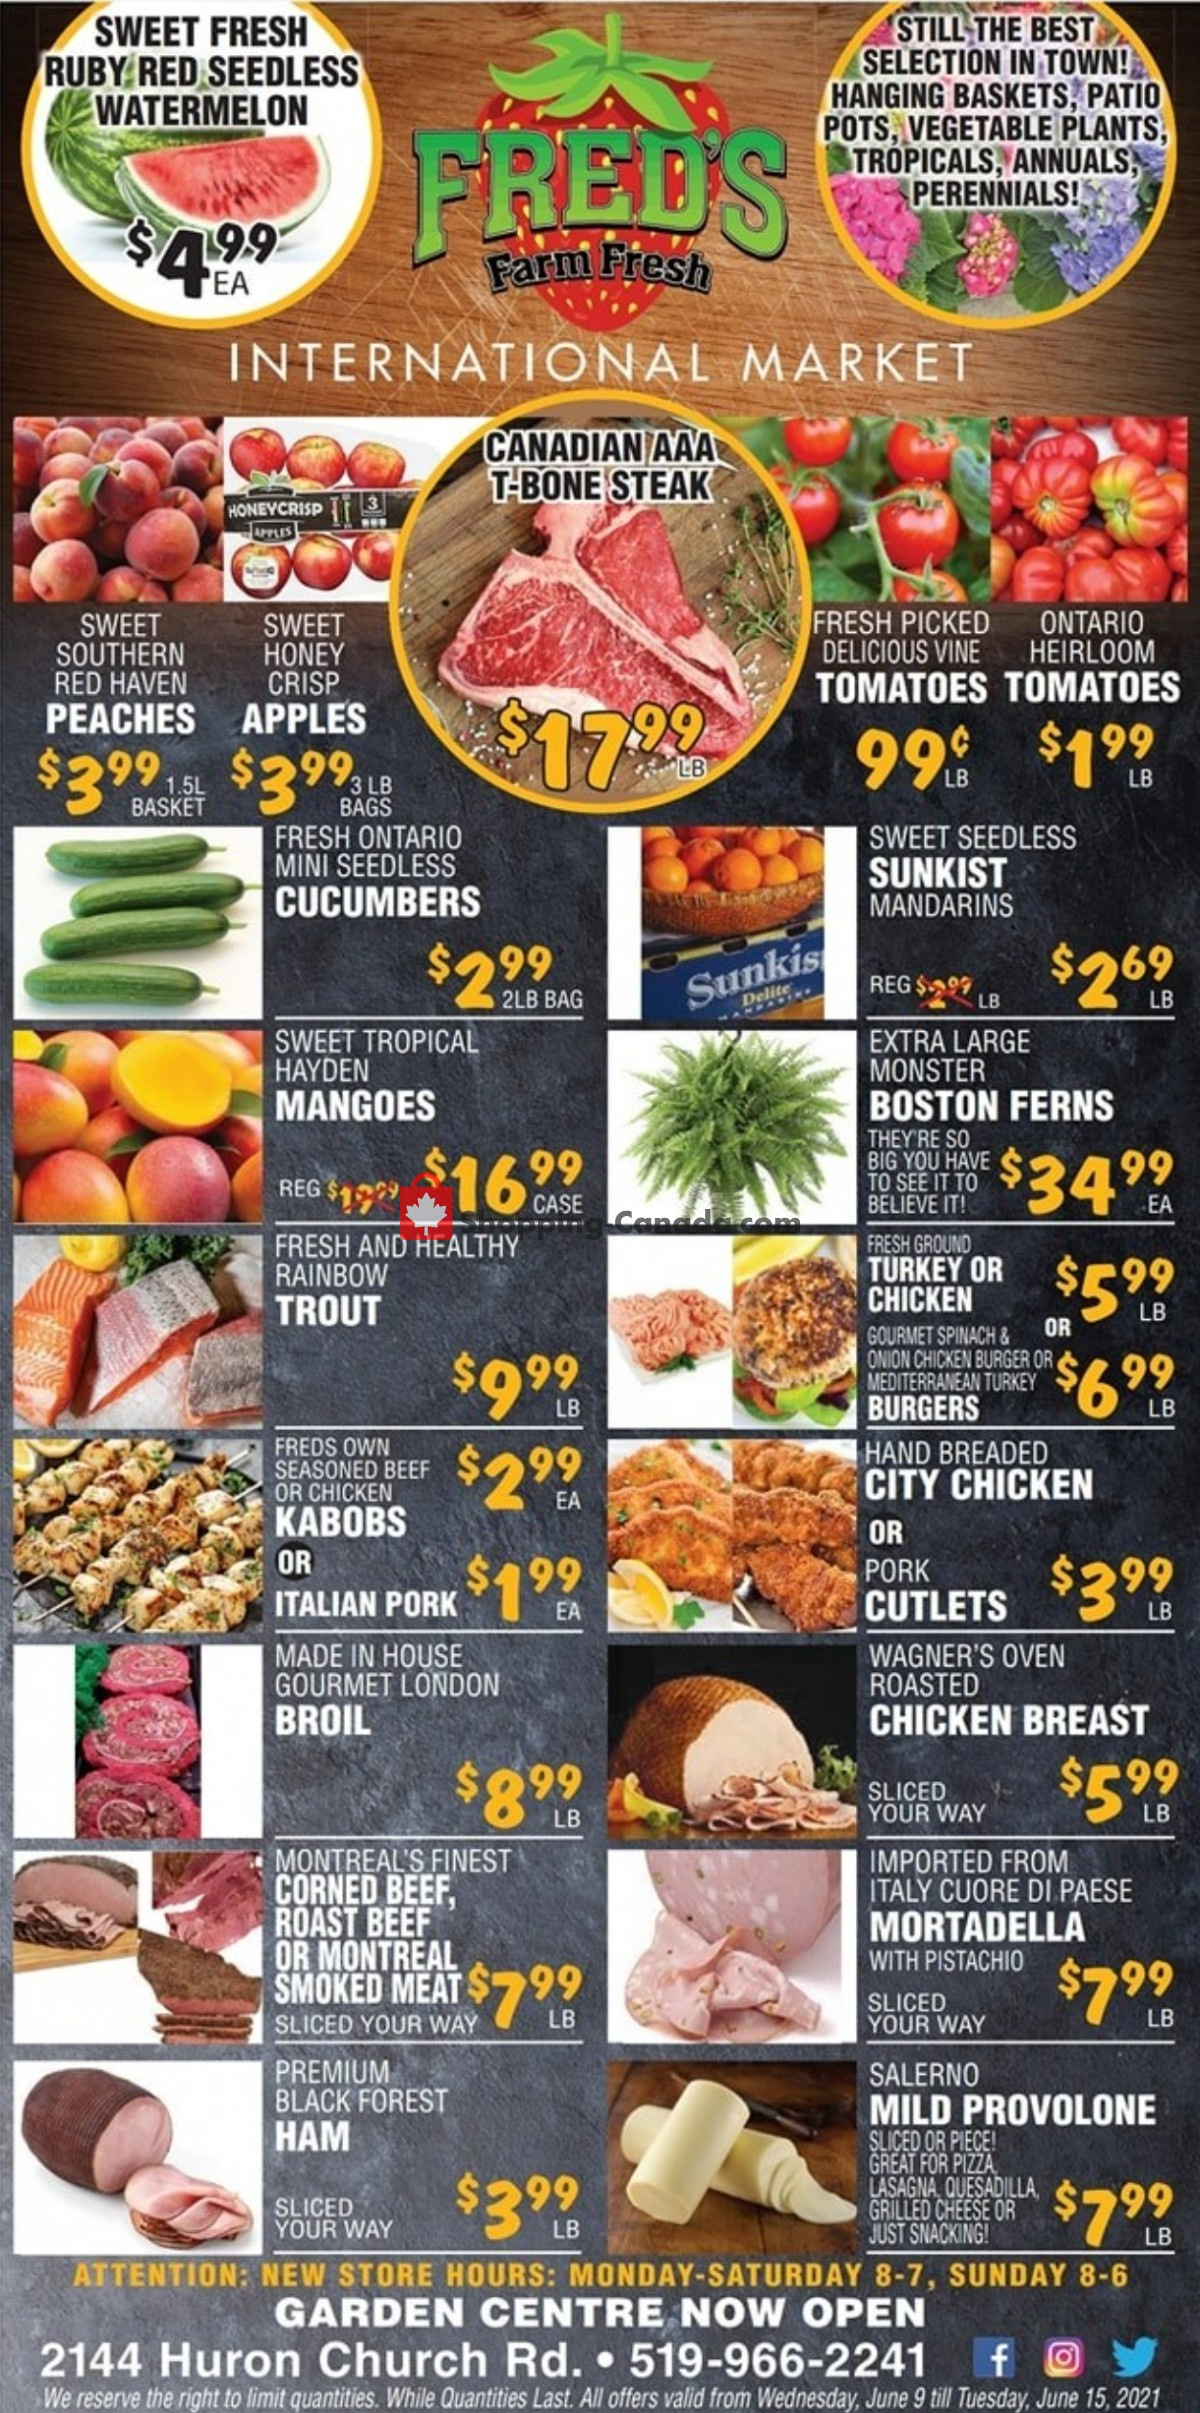 Flyer Fred's Farm Fresh Canada - from Wednesday June 9, 2021 to Tuesday June 15, 2021